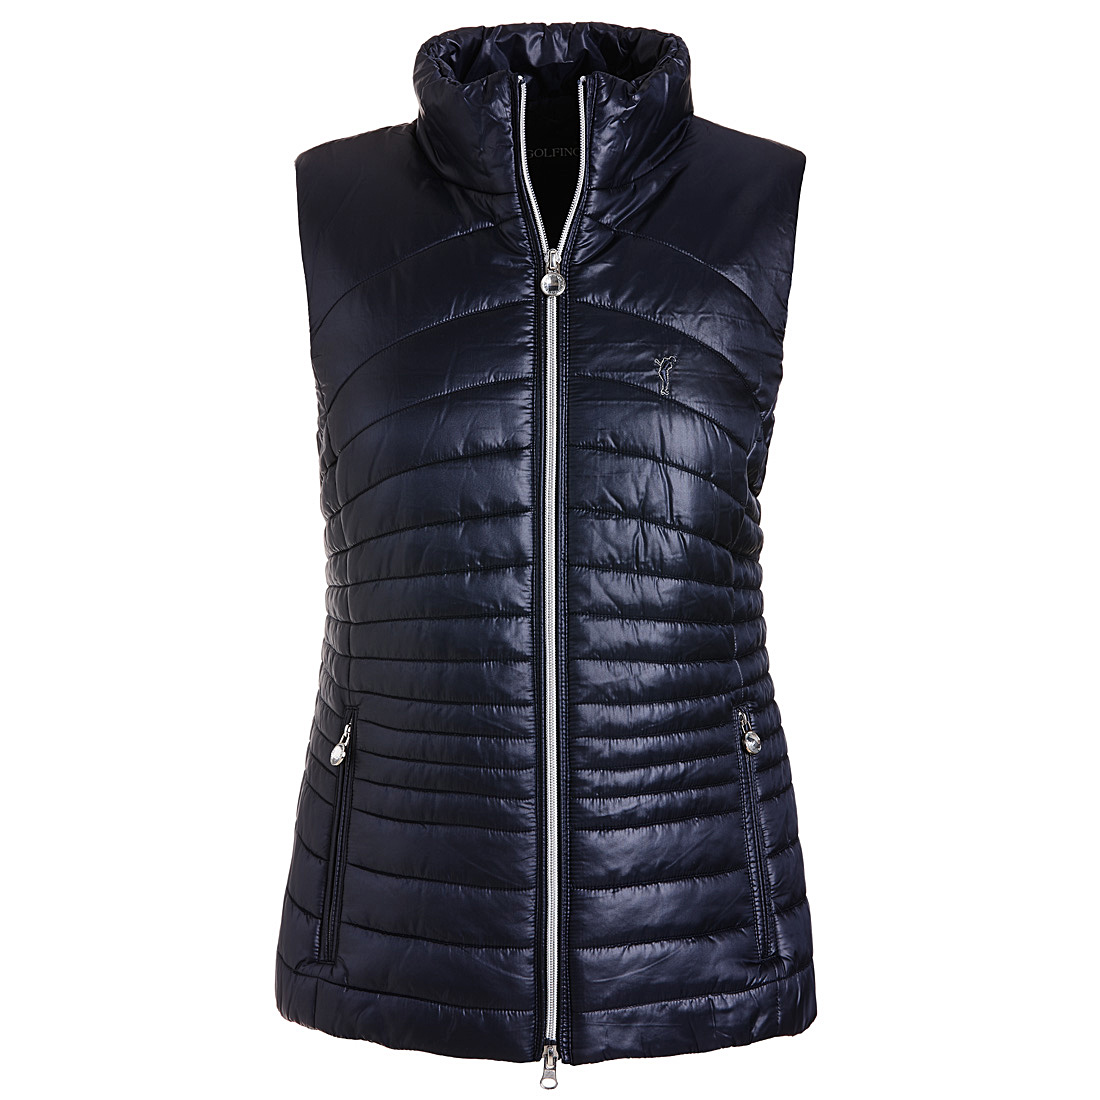 Quilted micro waistcoat